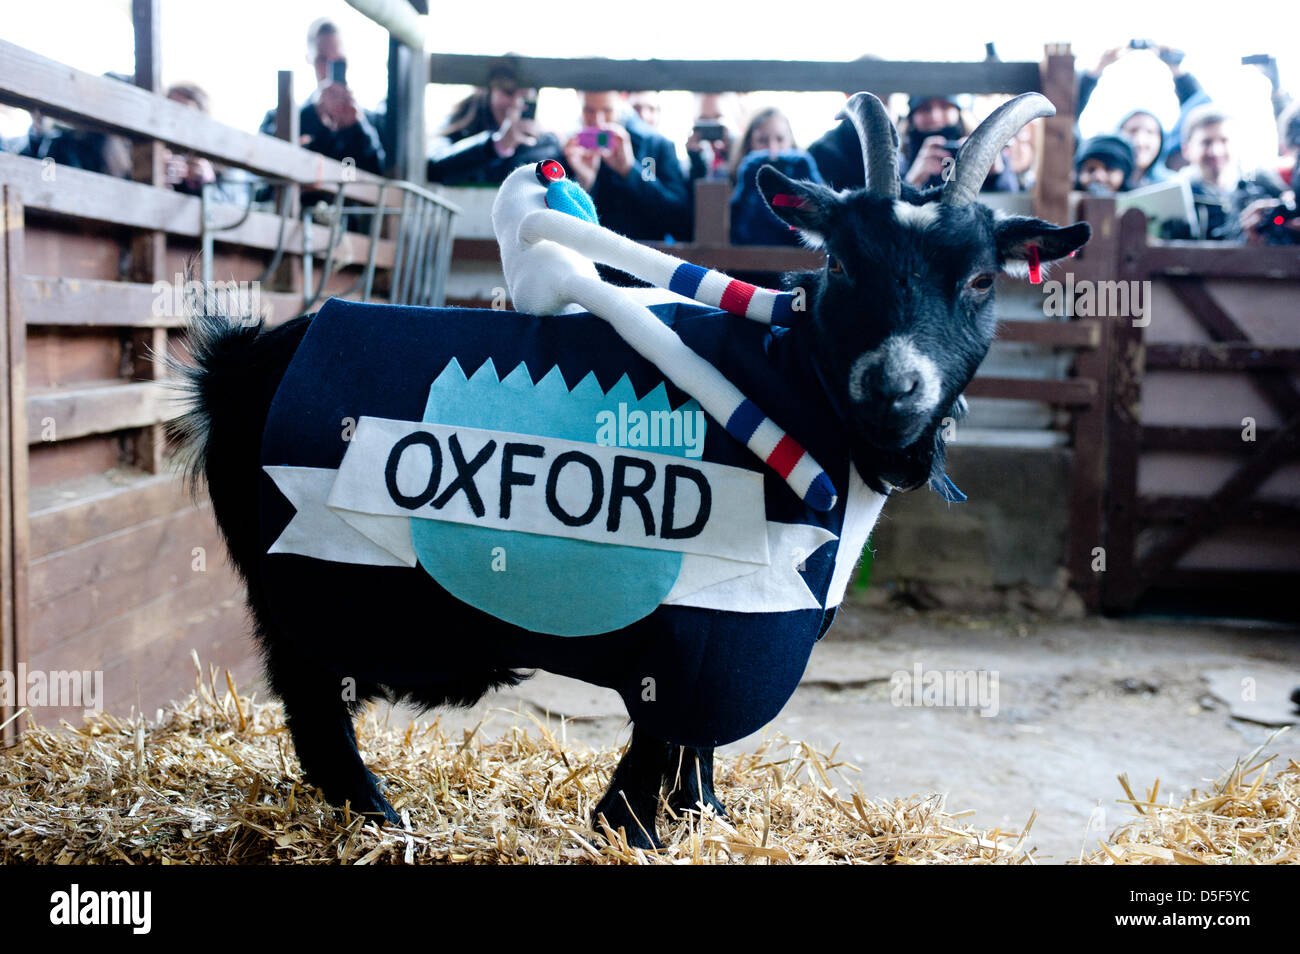 London, UK - 31 March 2013: Oxford Goat poses for a picture at the 5th Annual Oxford and Cambridge Goat Race that - Stock Image